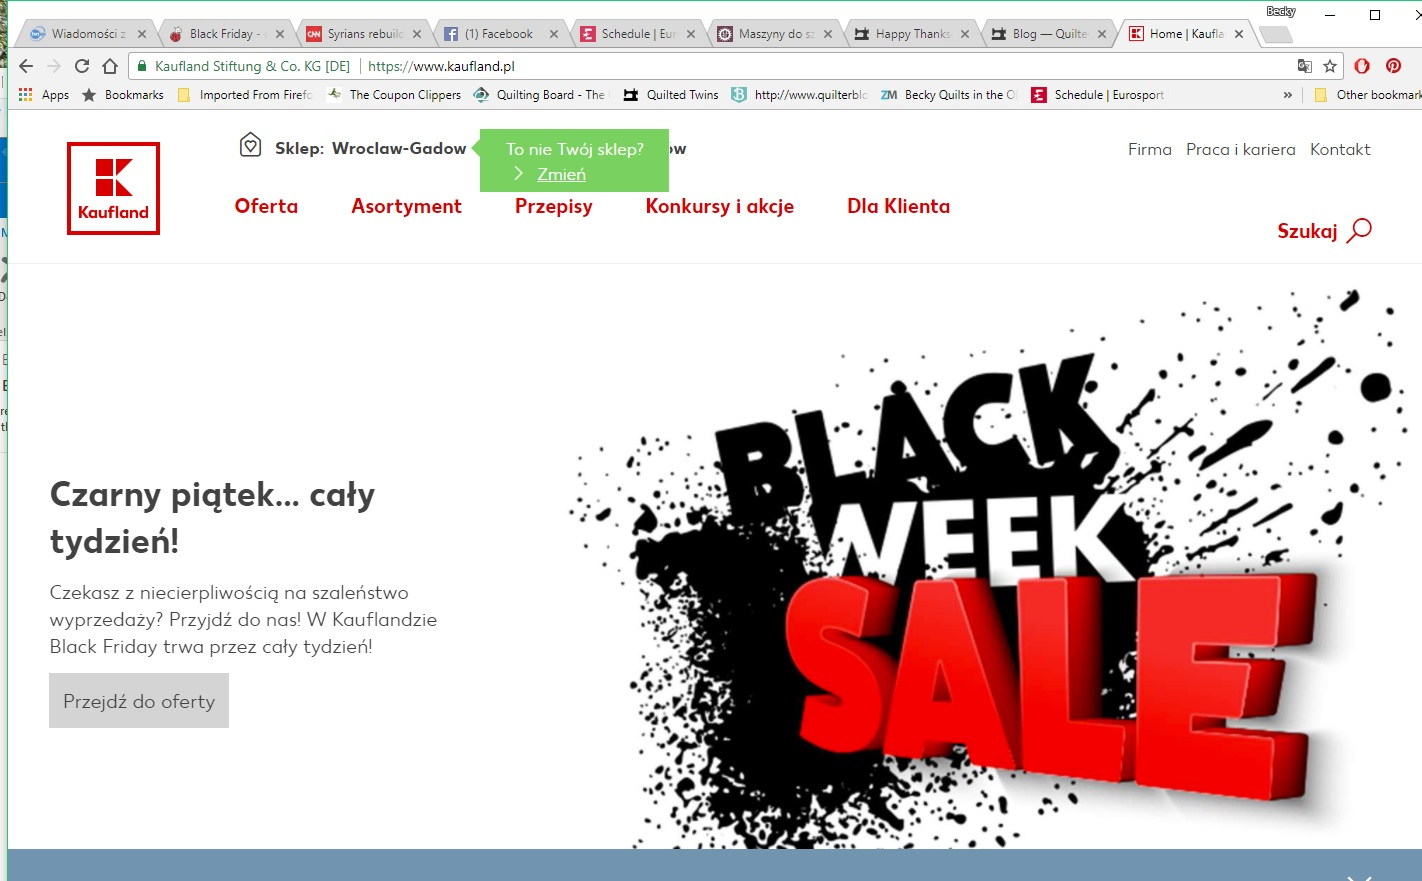 At least in this ad they translated it. Czarny Piatek means Black Friday - Literally it translates - Black Friday - the whole week.